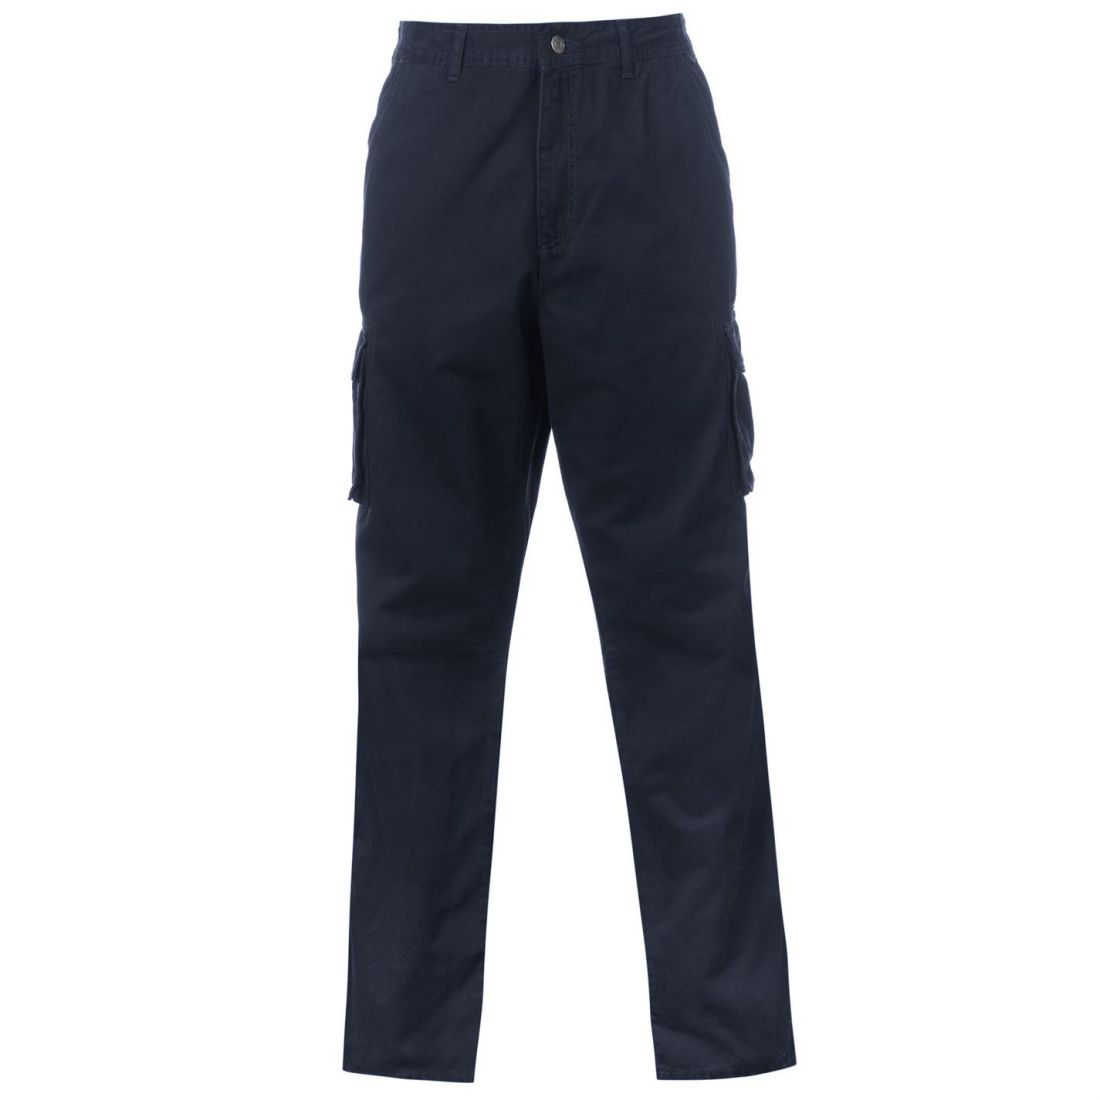 9695d76480 Full Blue Cargo Trousers Mens Gents Pants Bottoms Cotton Zip | eBay